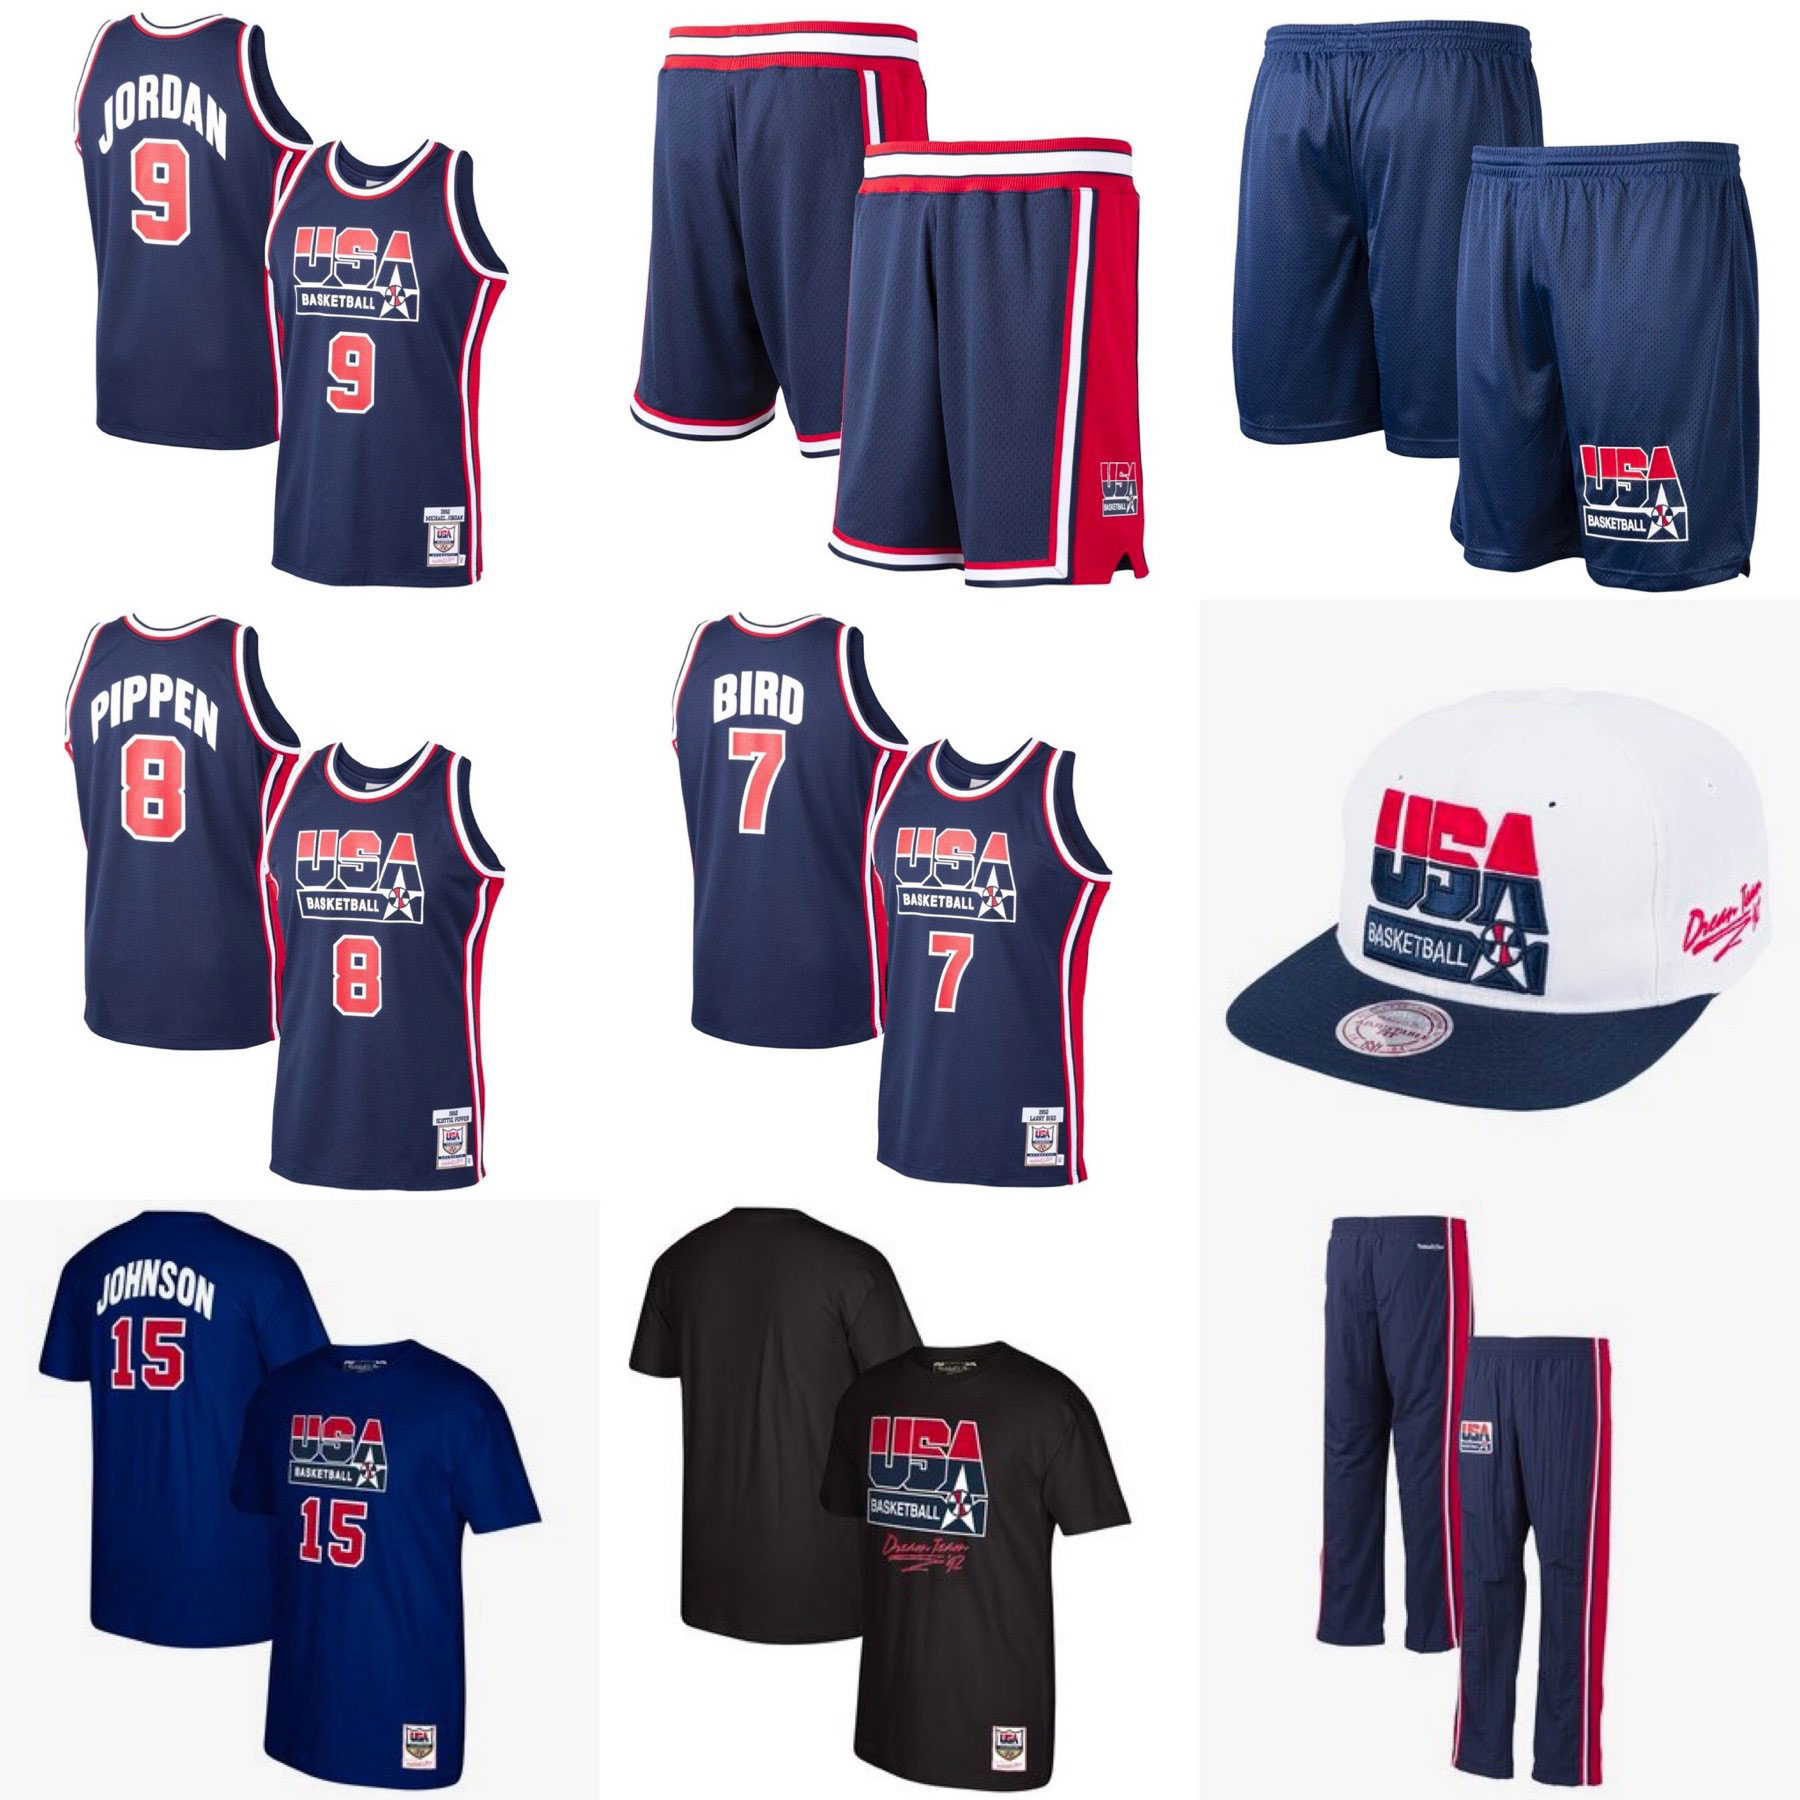 1992-nba-dream-team-basketball-gear